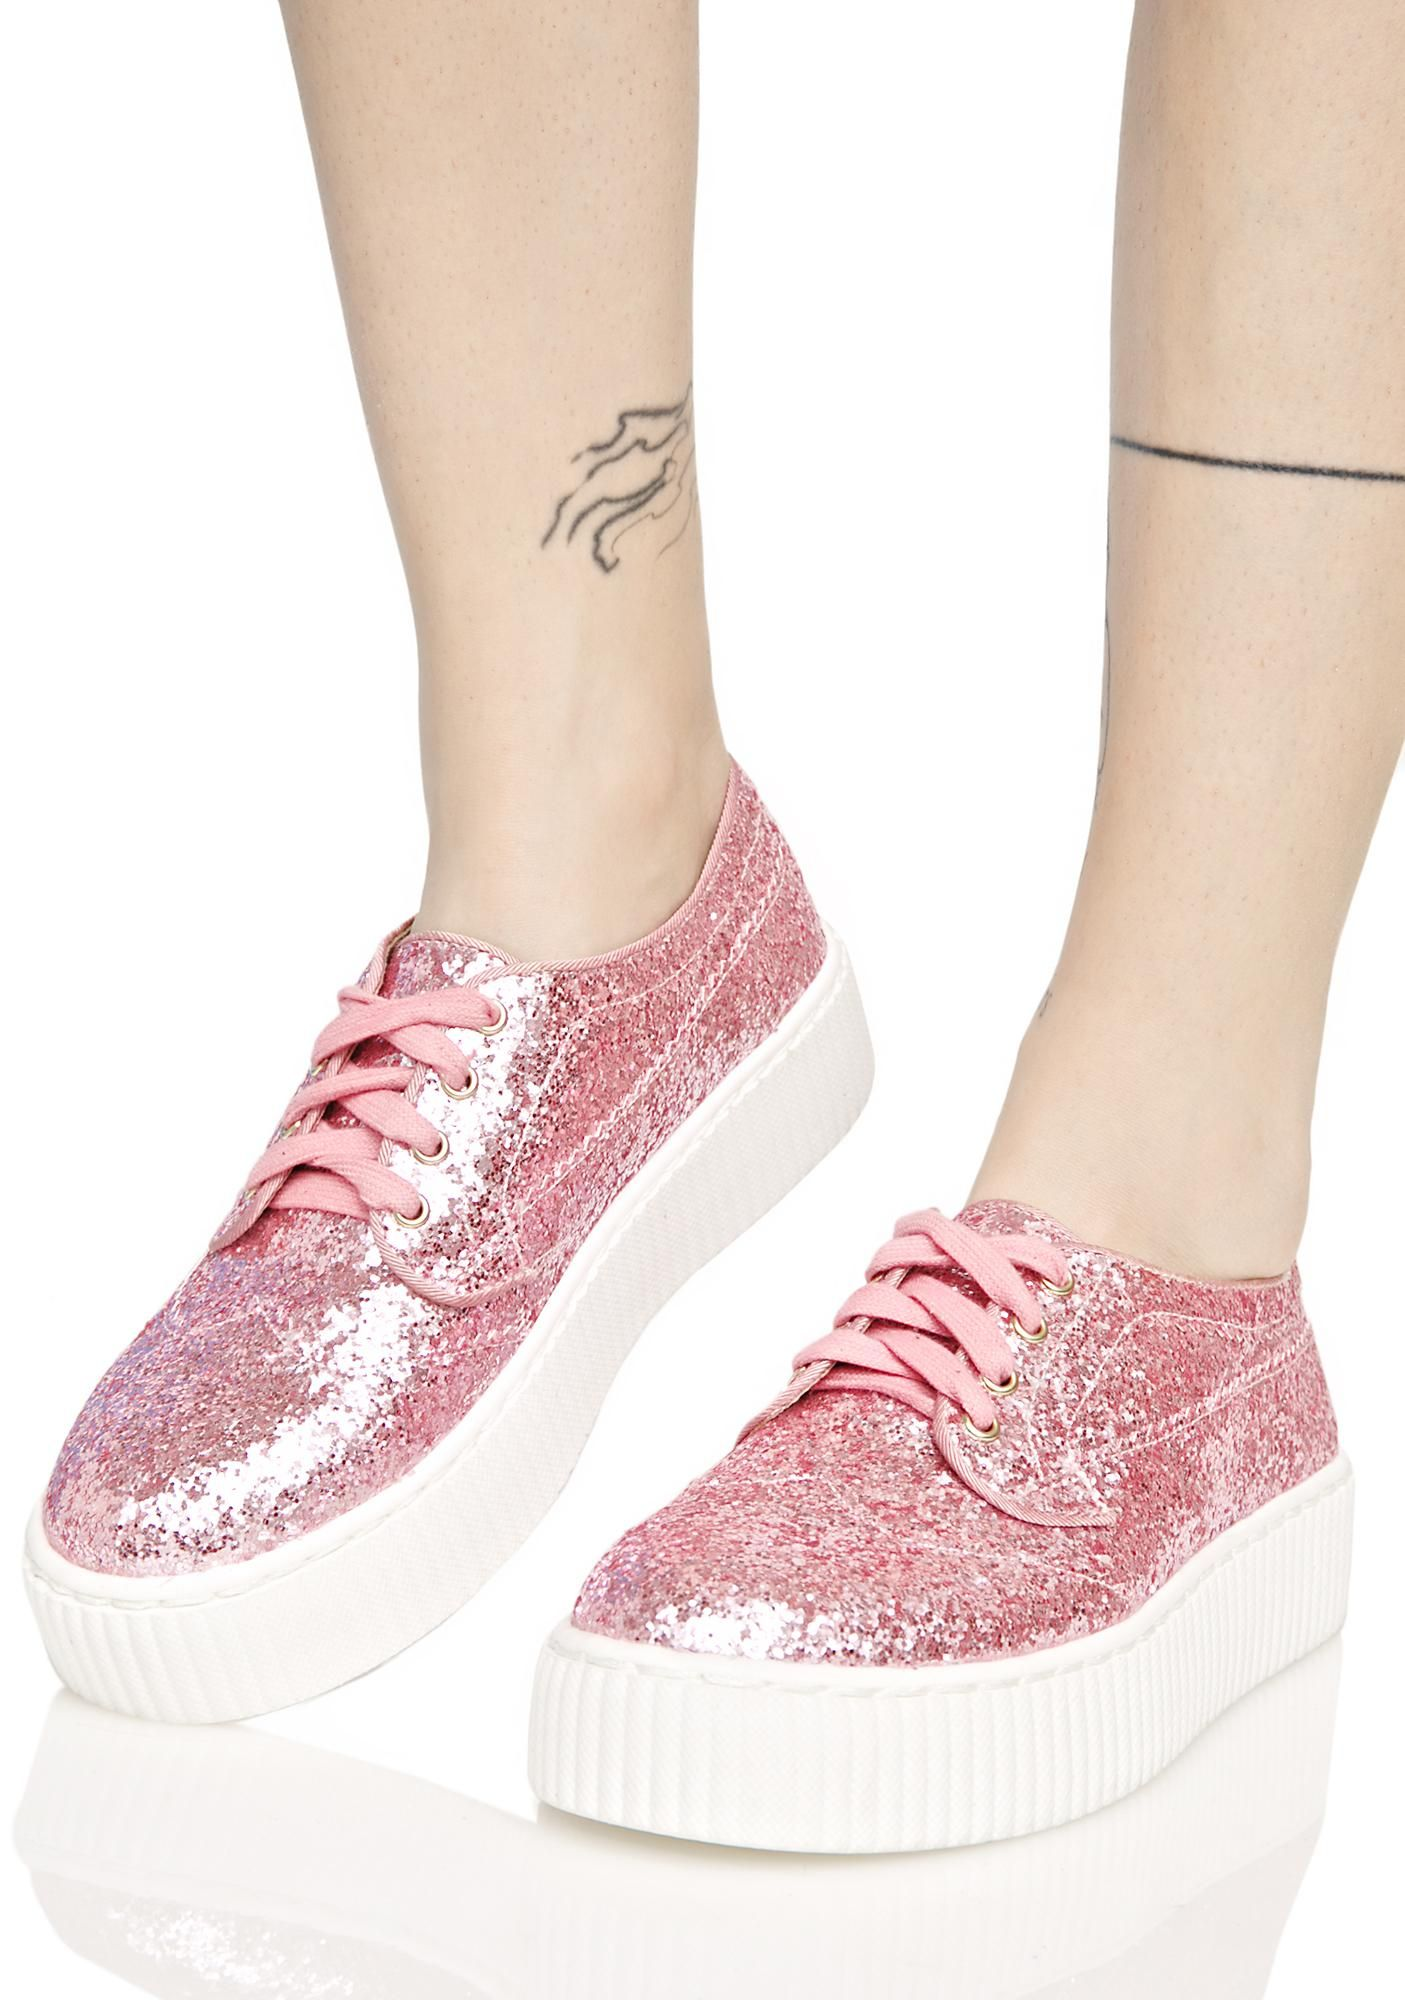 75cde4199aae3 Shellys London Pink Sparkle Sneakers Pink Sparkles